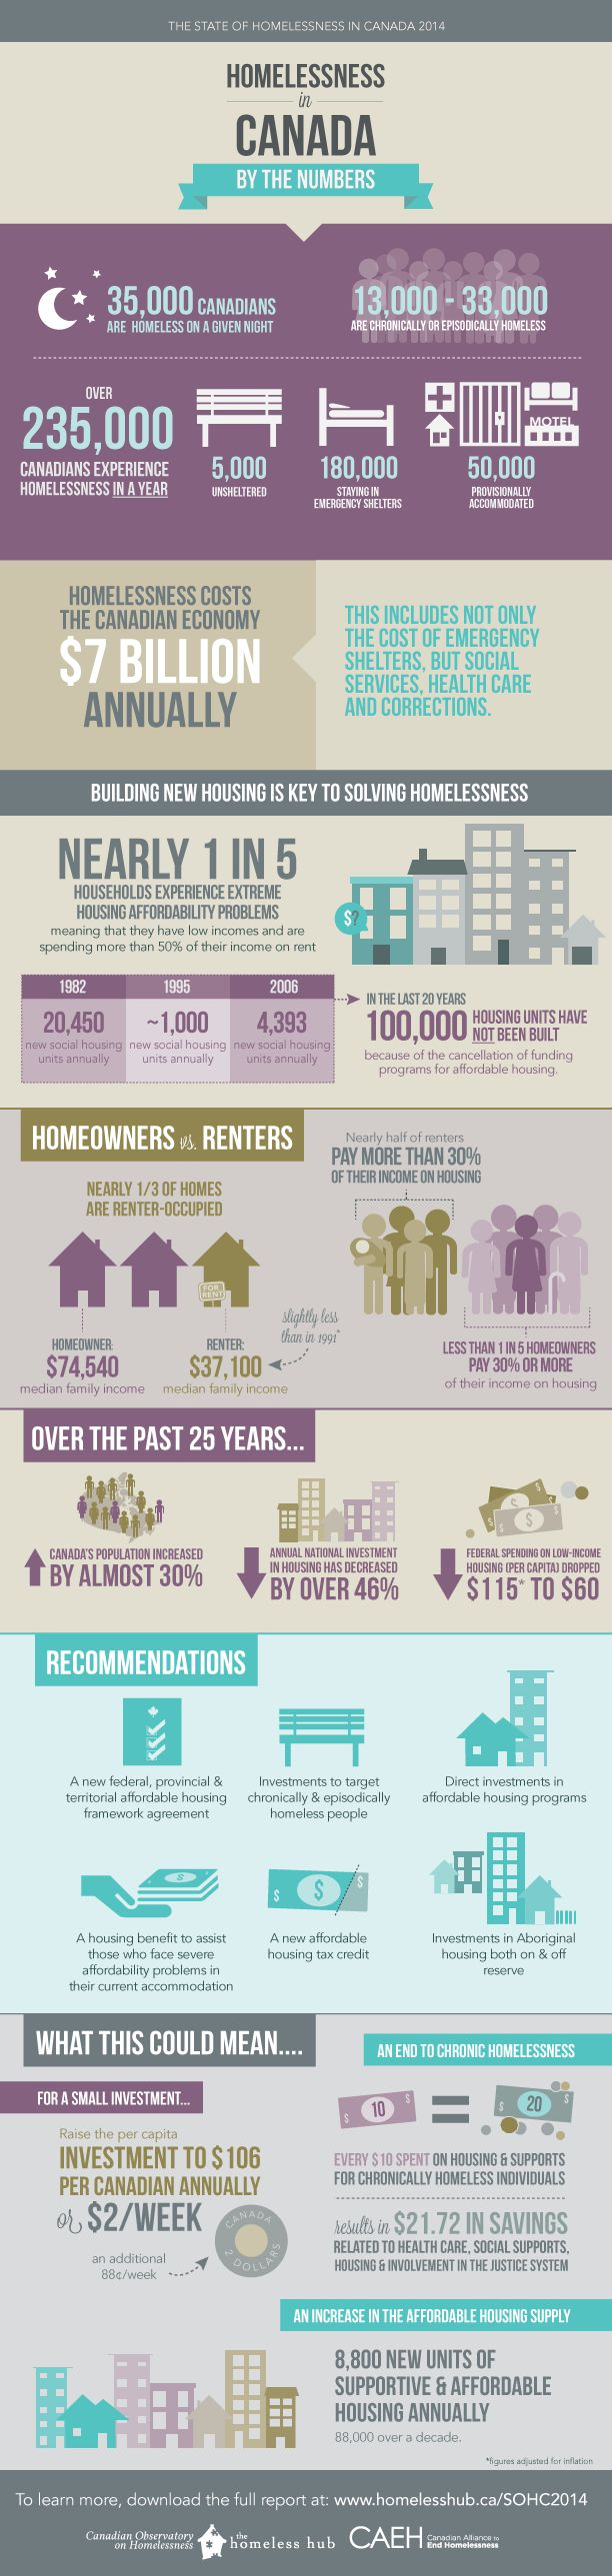 Homelessness in Canada by the Numbers Infographic The State of Homelessness in Canada 2014 - Full Report |PDF http://www.homelesshub.ca/sites/default/files/SOHC2014.pdf